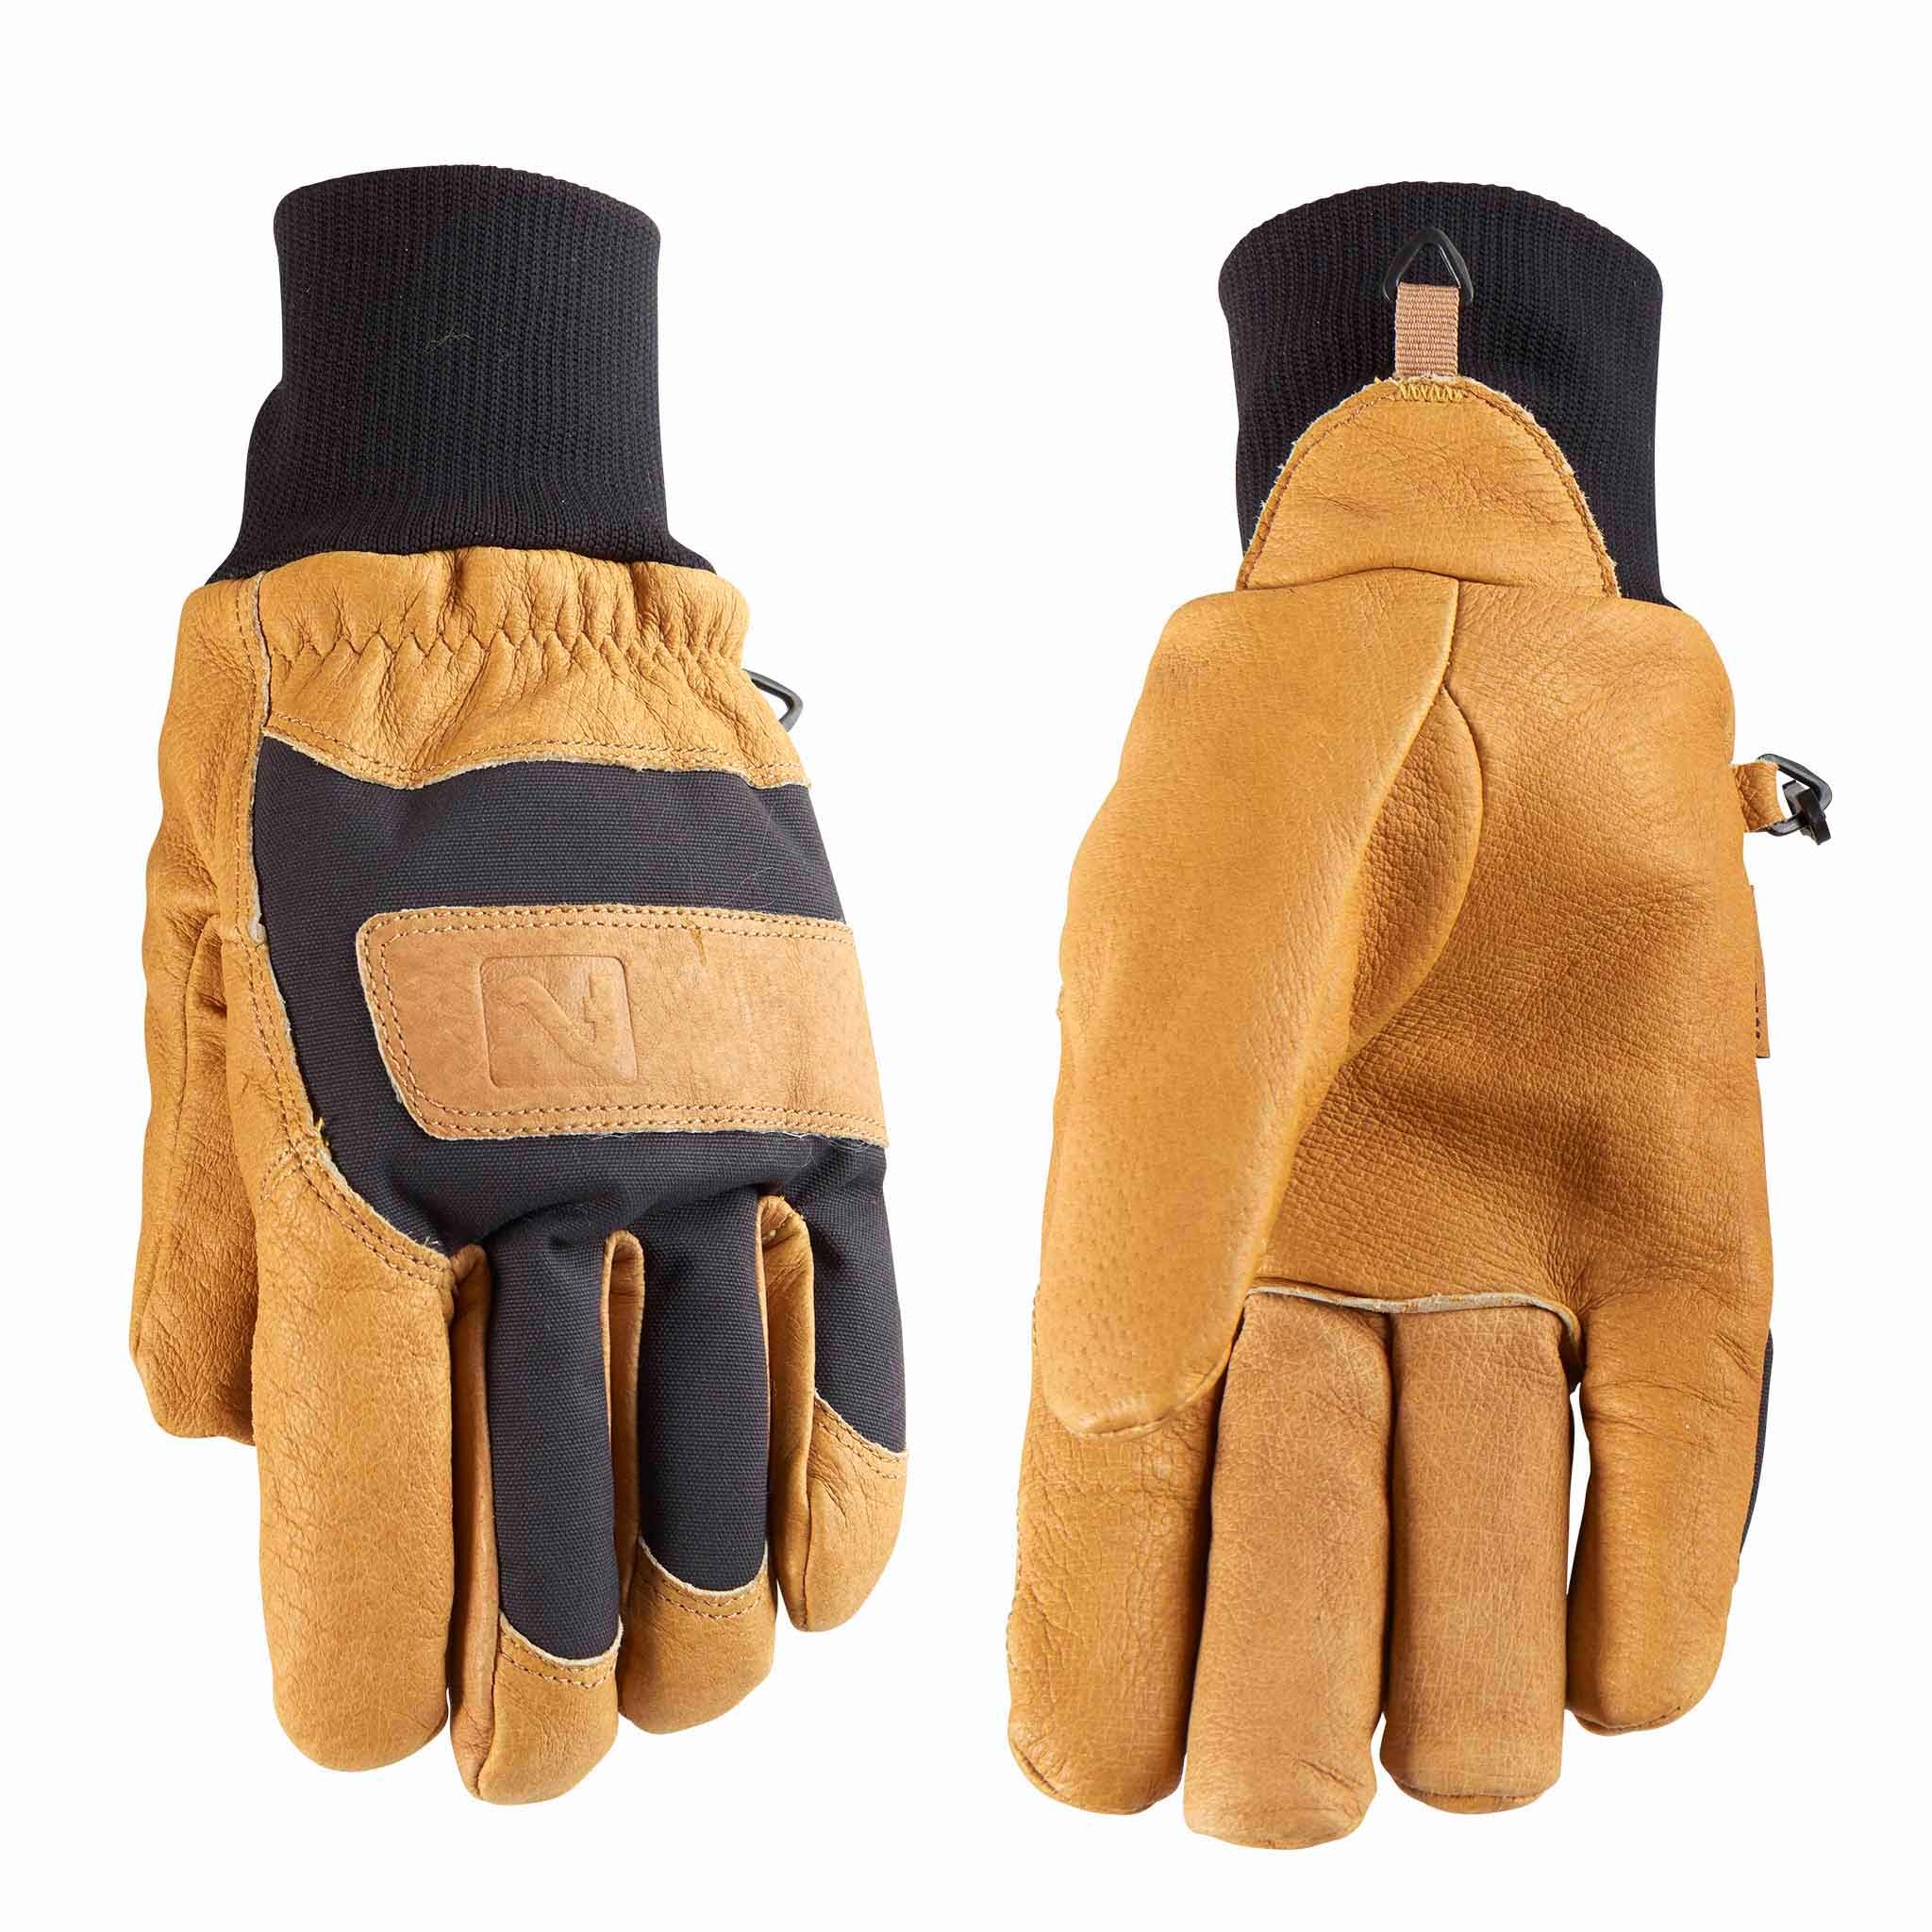 fe6f59a5 How To Clean and Waterproof Your Leather Gloves!